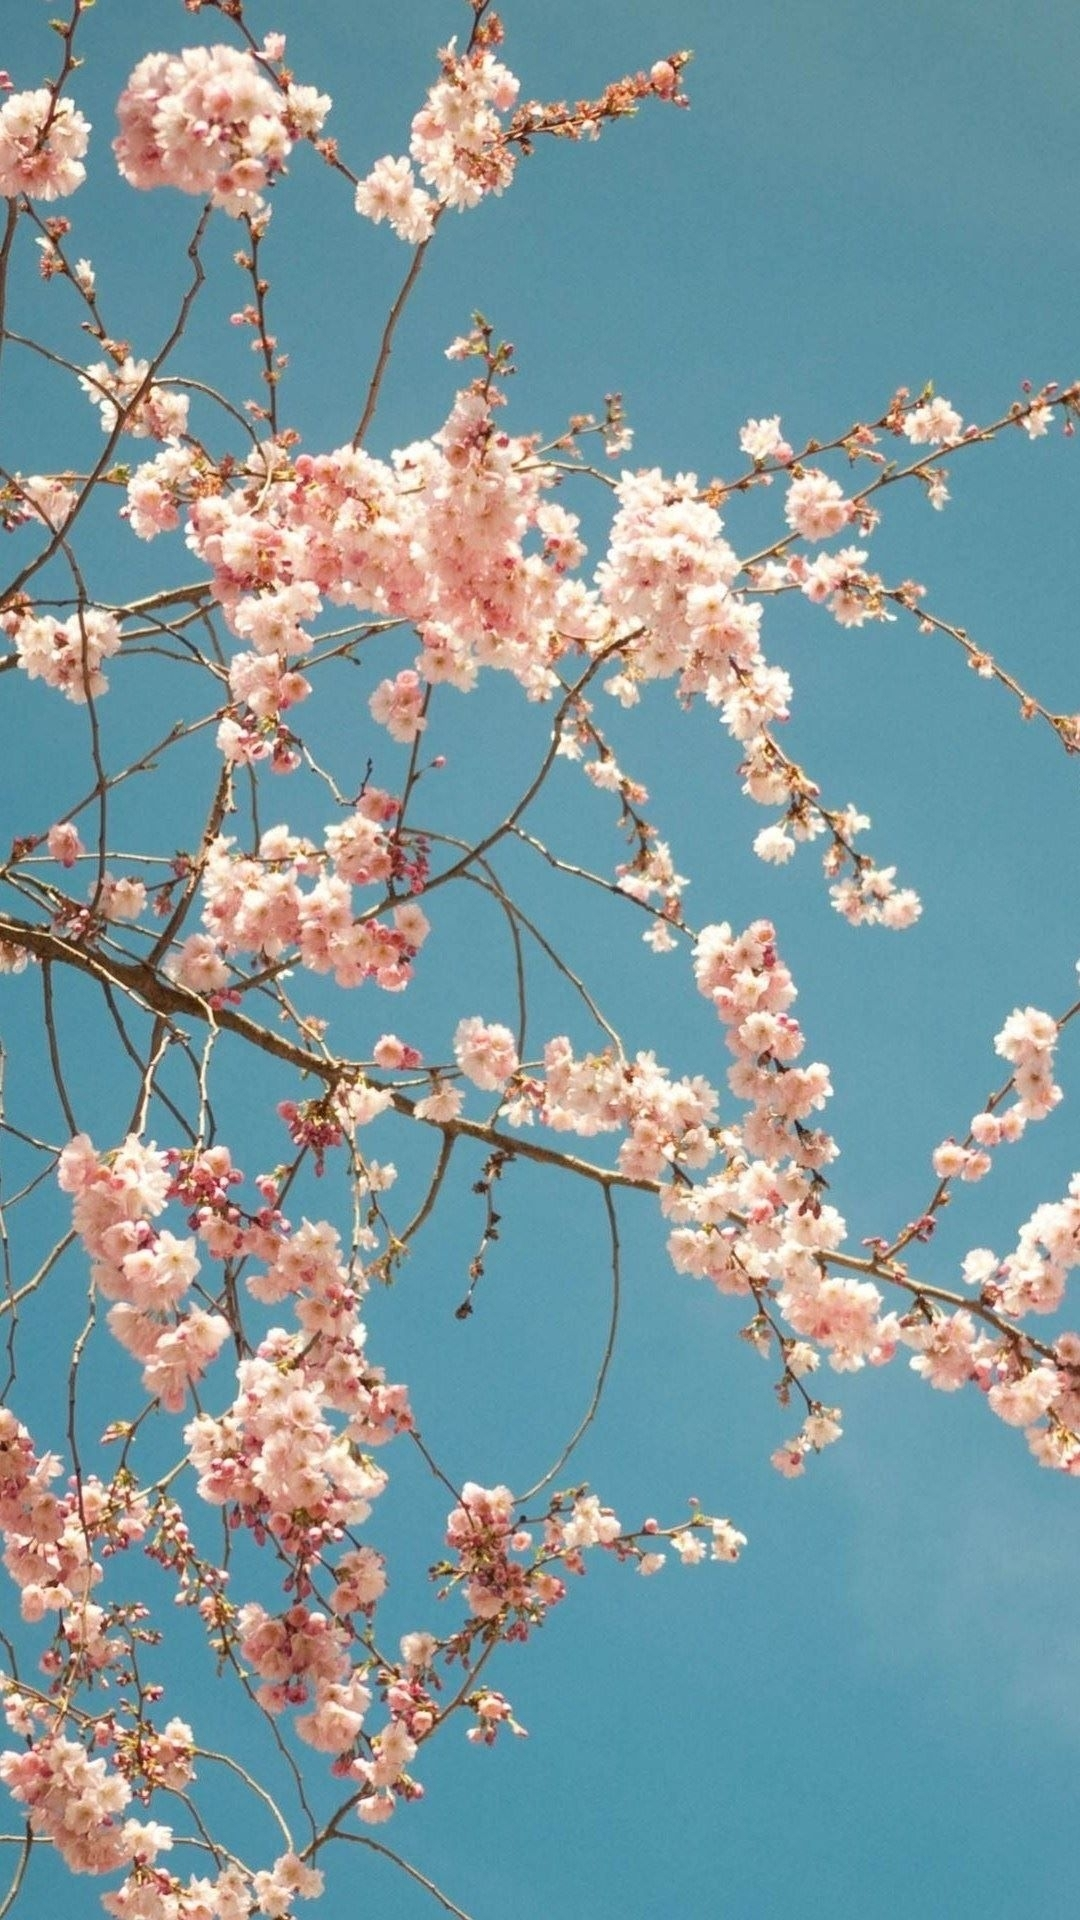 cherry blossom tree - high quality htc one wallpapers and abstract